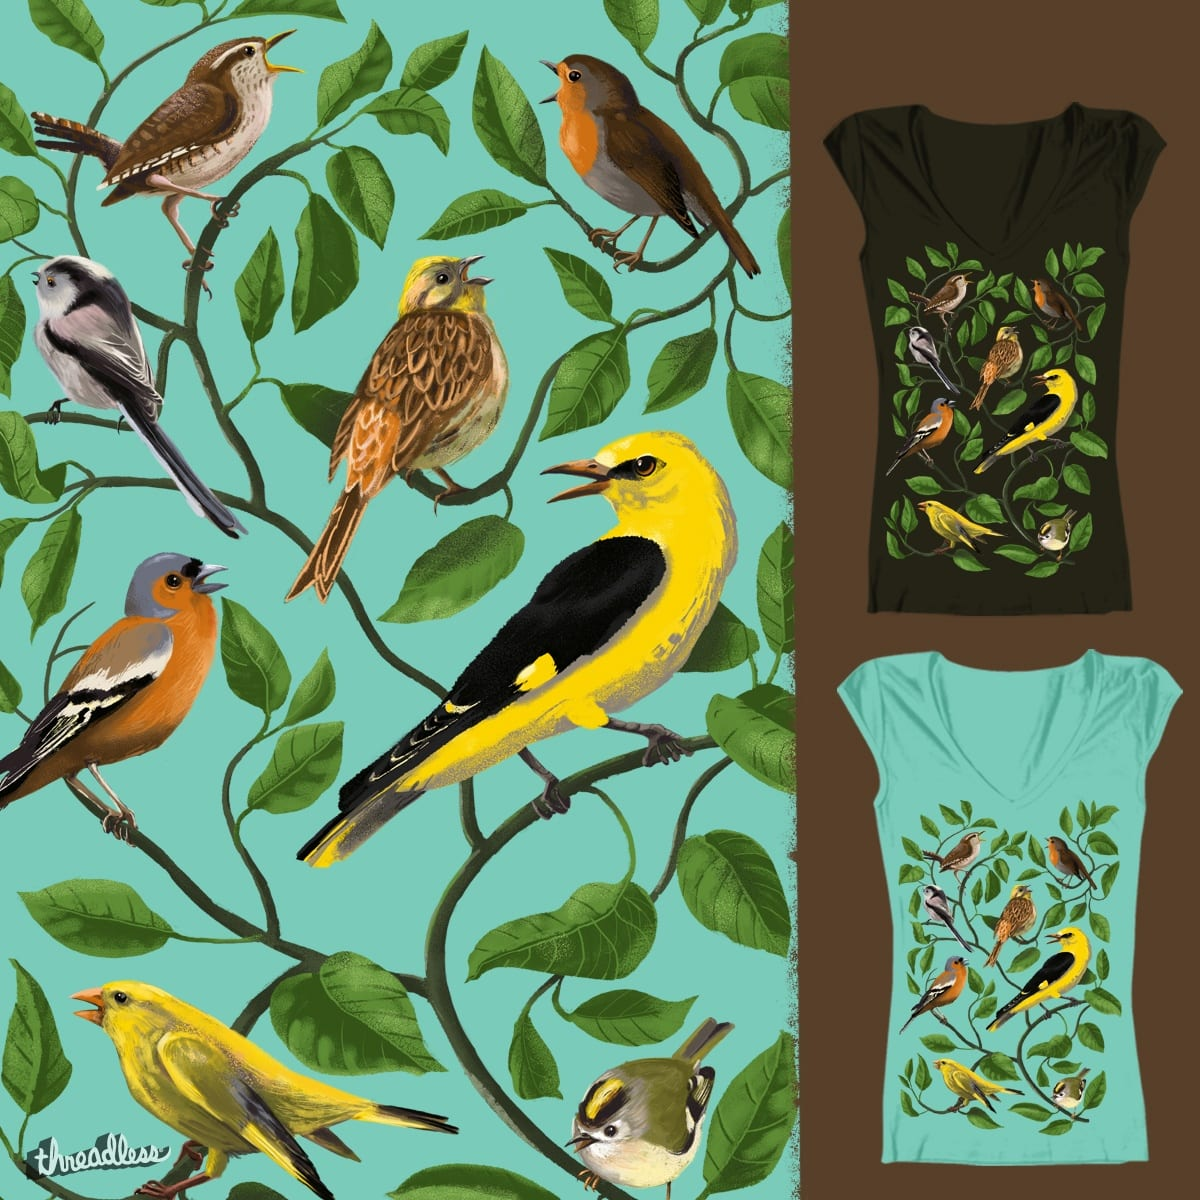 Some singing songbirds by deadsquirrel on Threadless